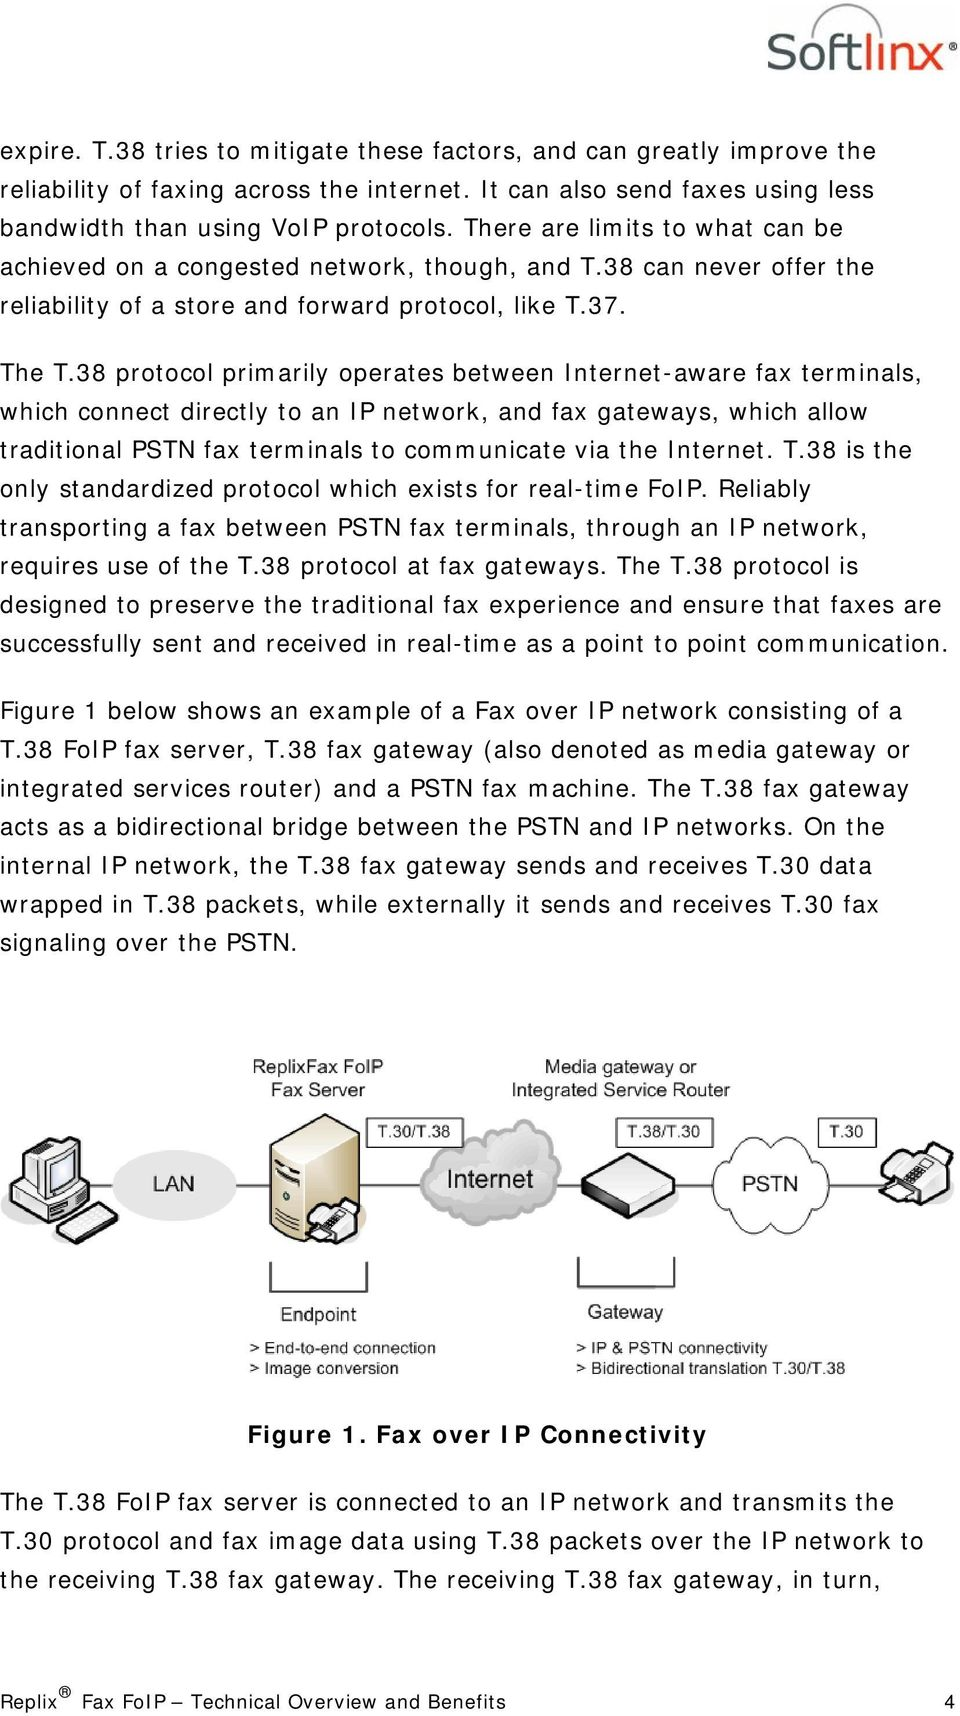 38 protocol primarily operates between Internet-aware fax terminals, which connect directly to an IP network, and fax gateways, which allow traditional PSTN fax terminals to communicate via the